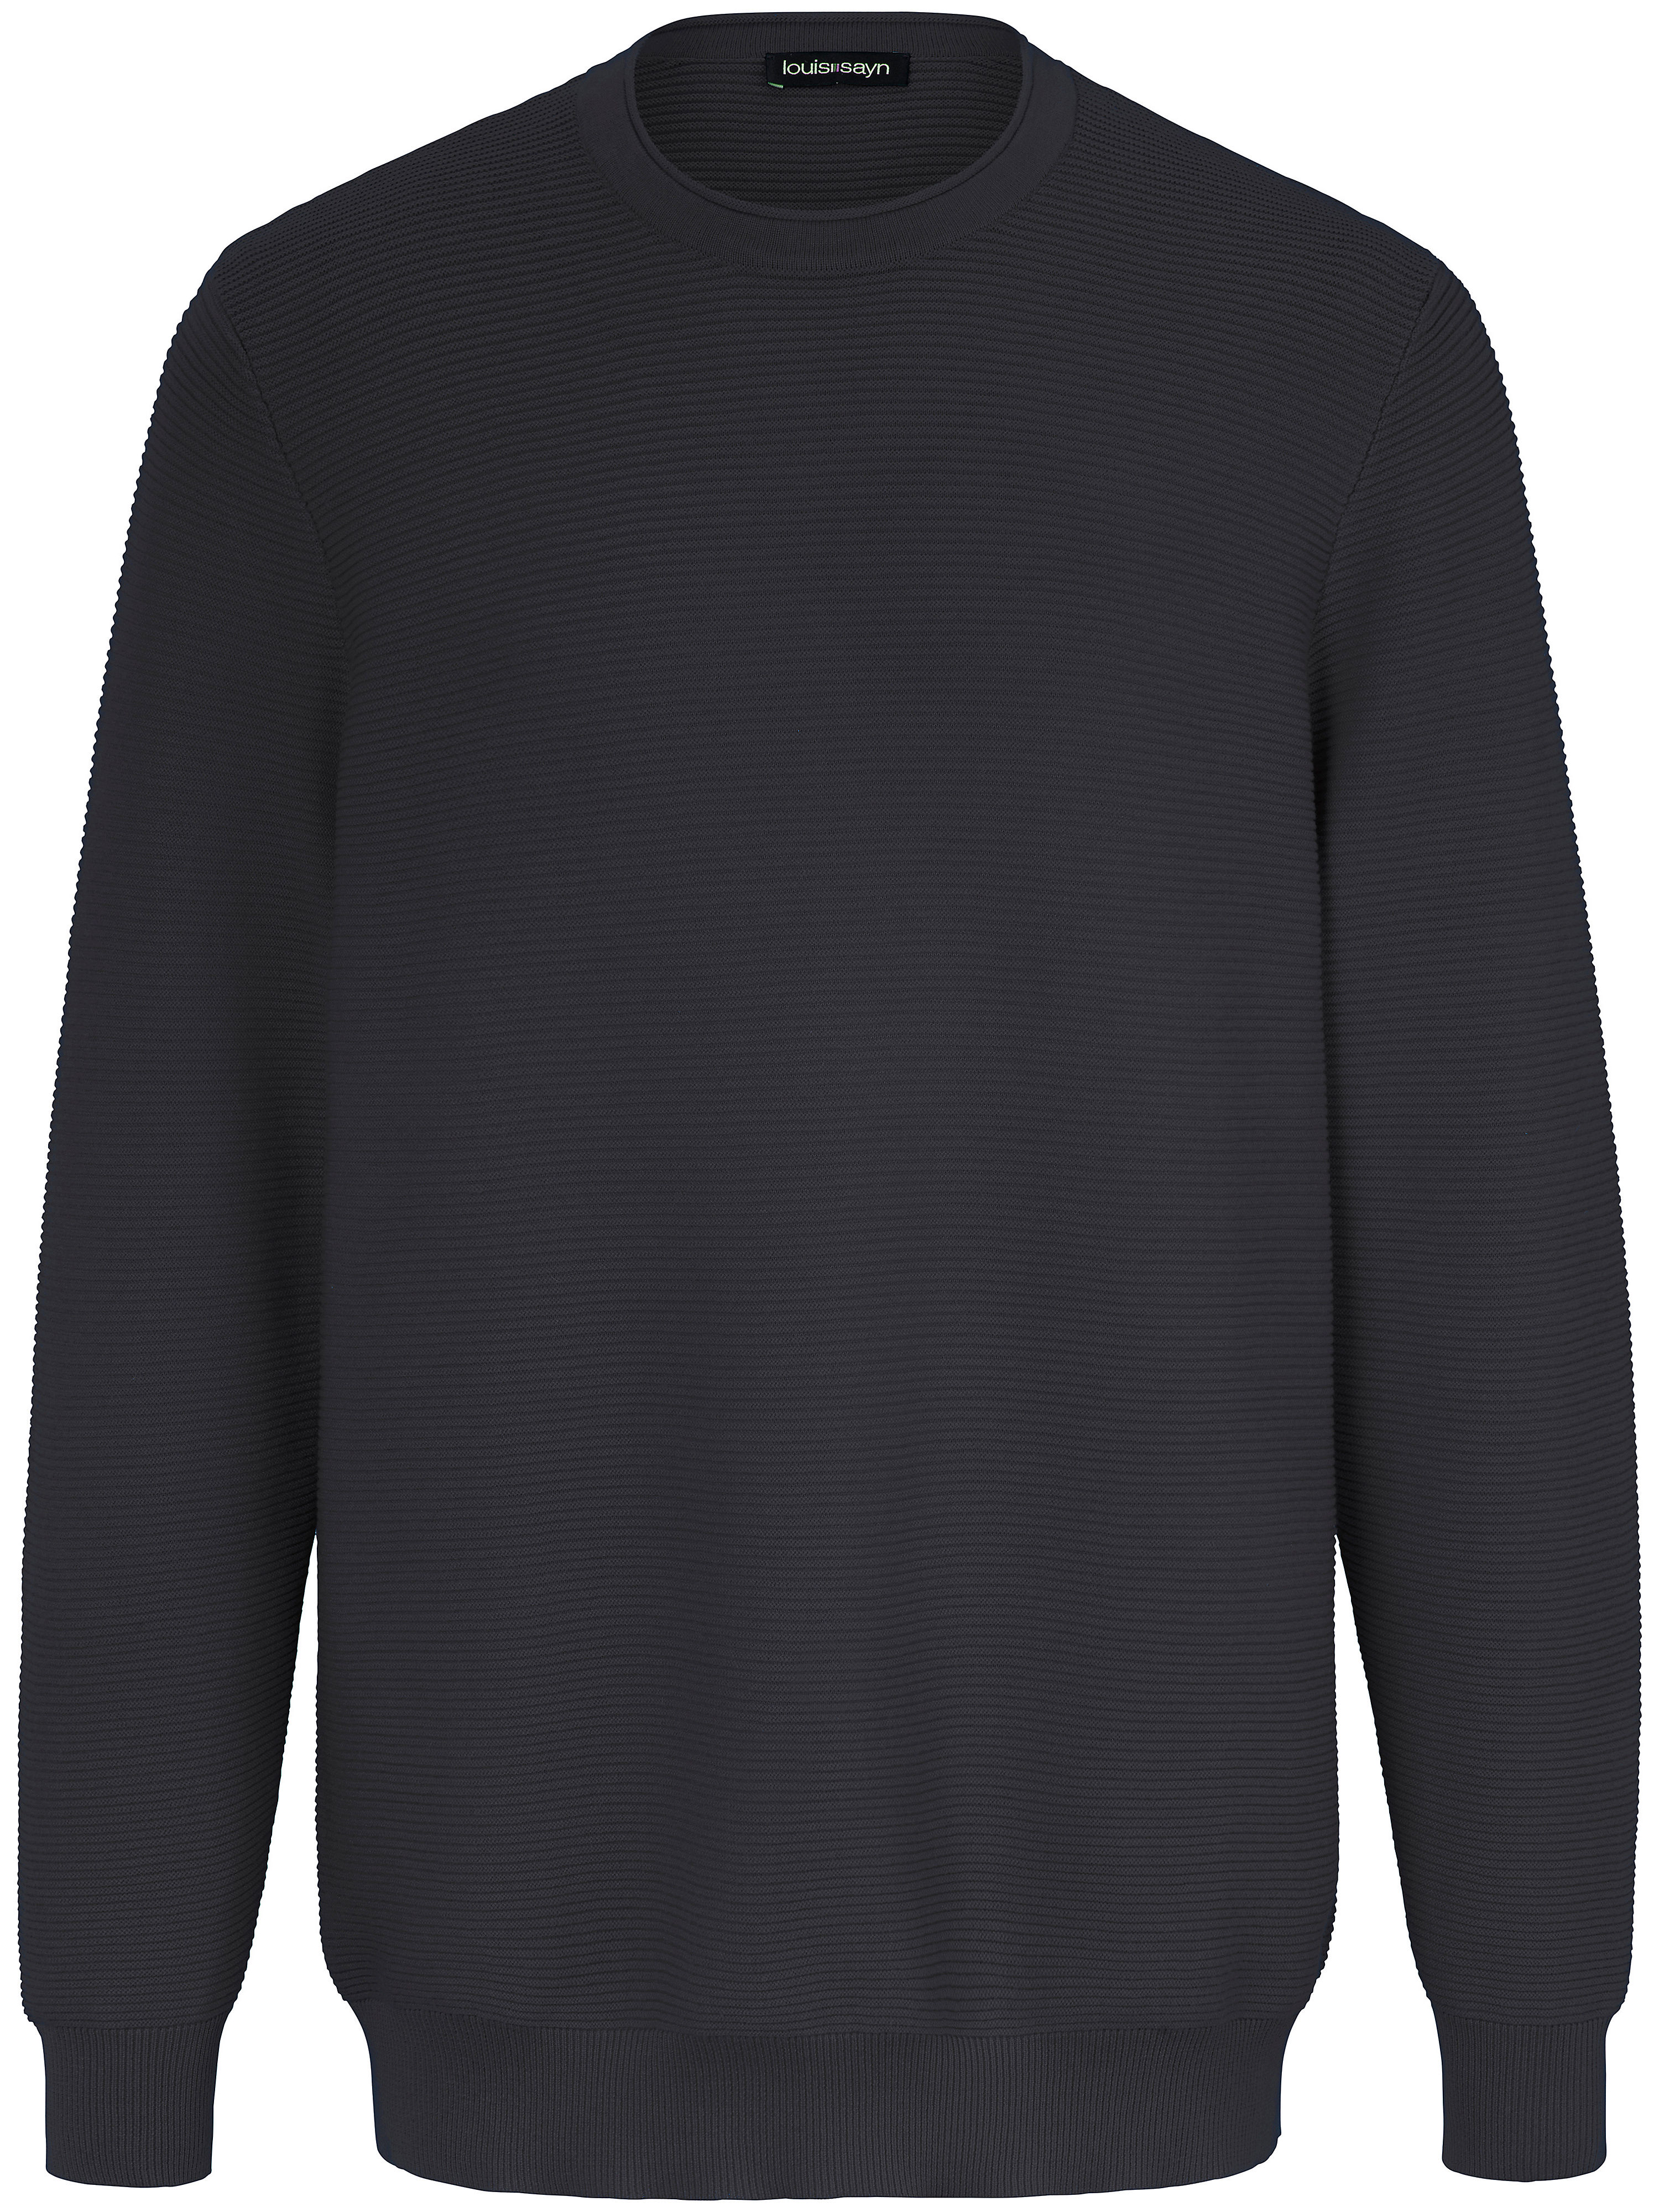 Le pull  Louis Sayn gris taille 58